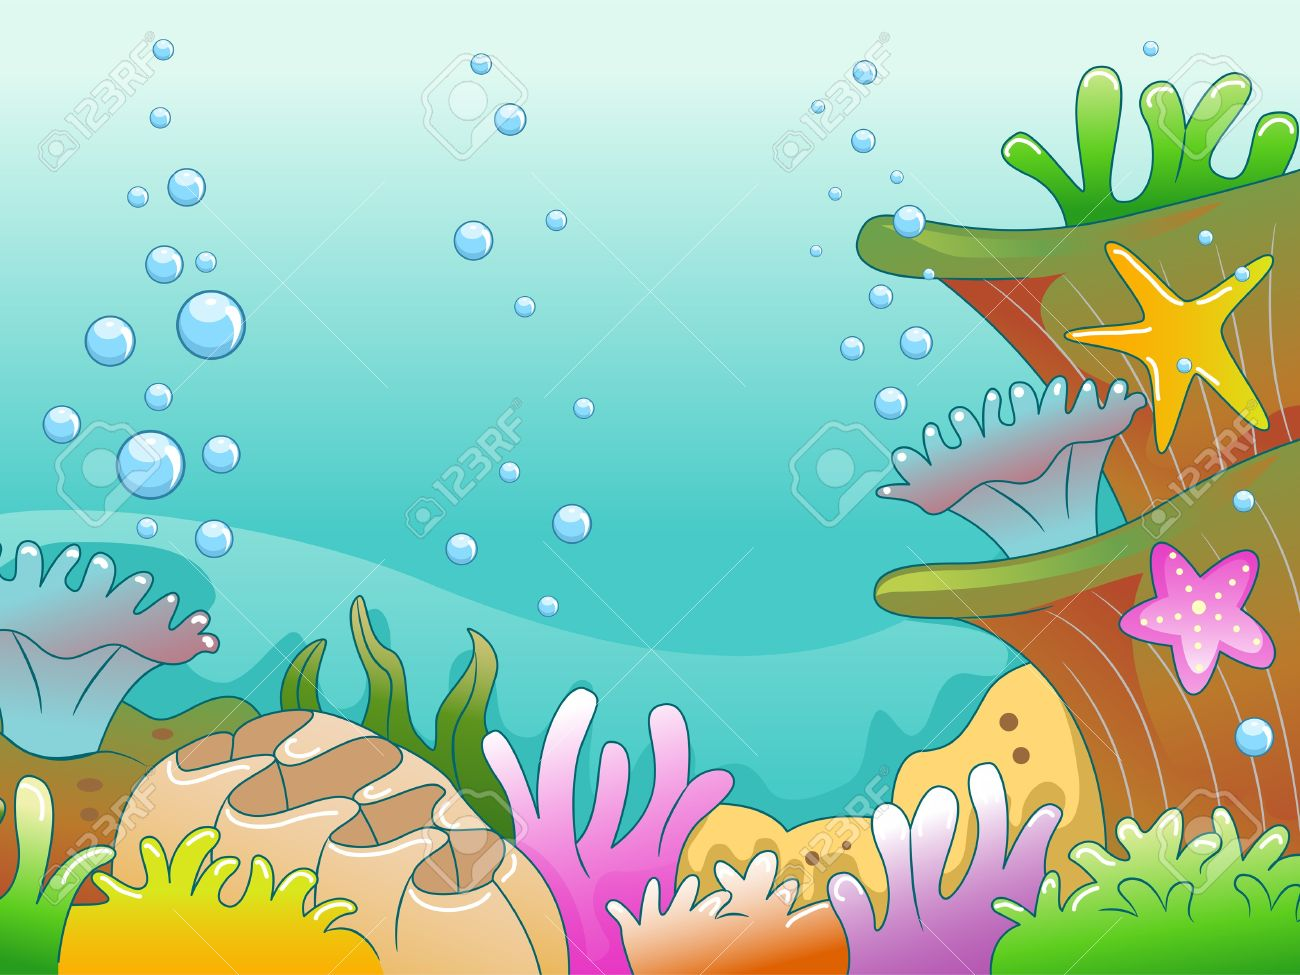 Sea Bed clipart #6, Download drawings